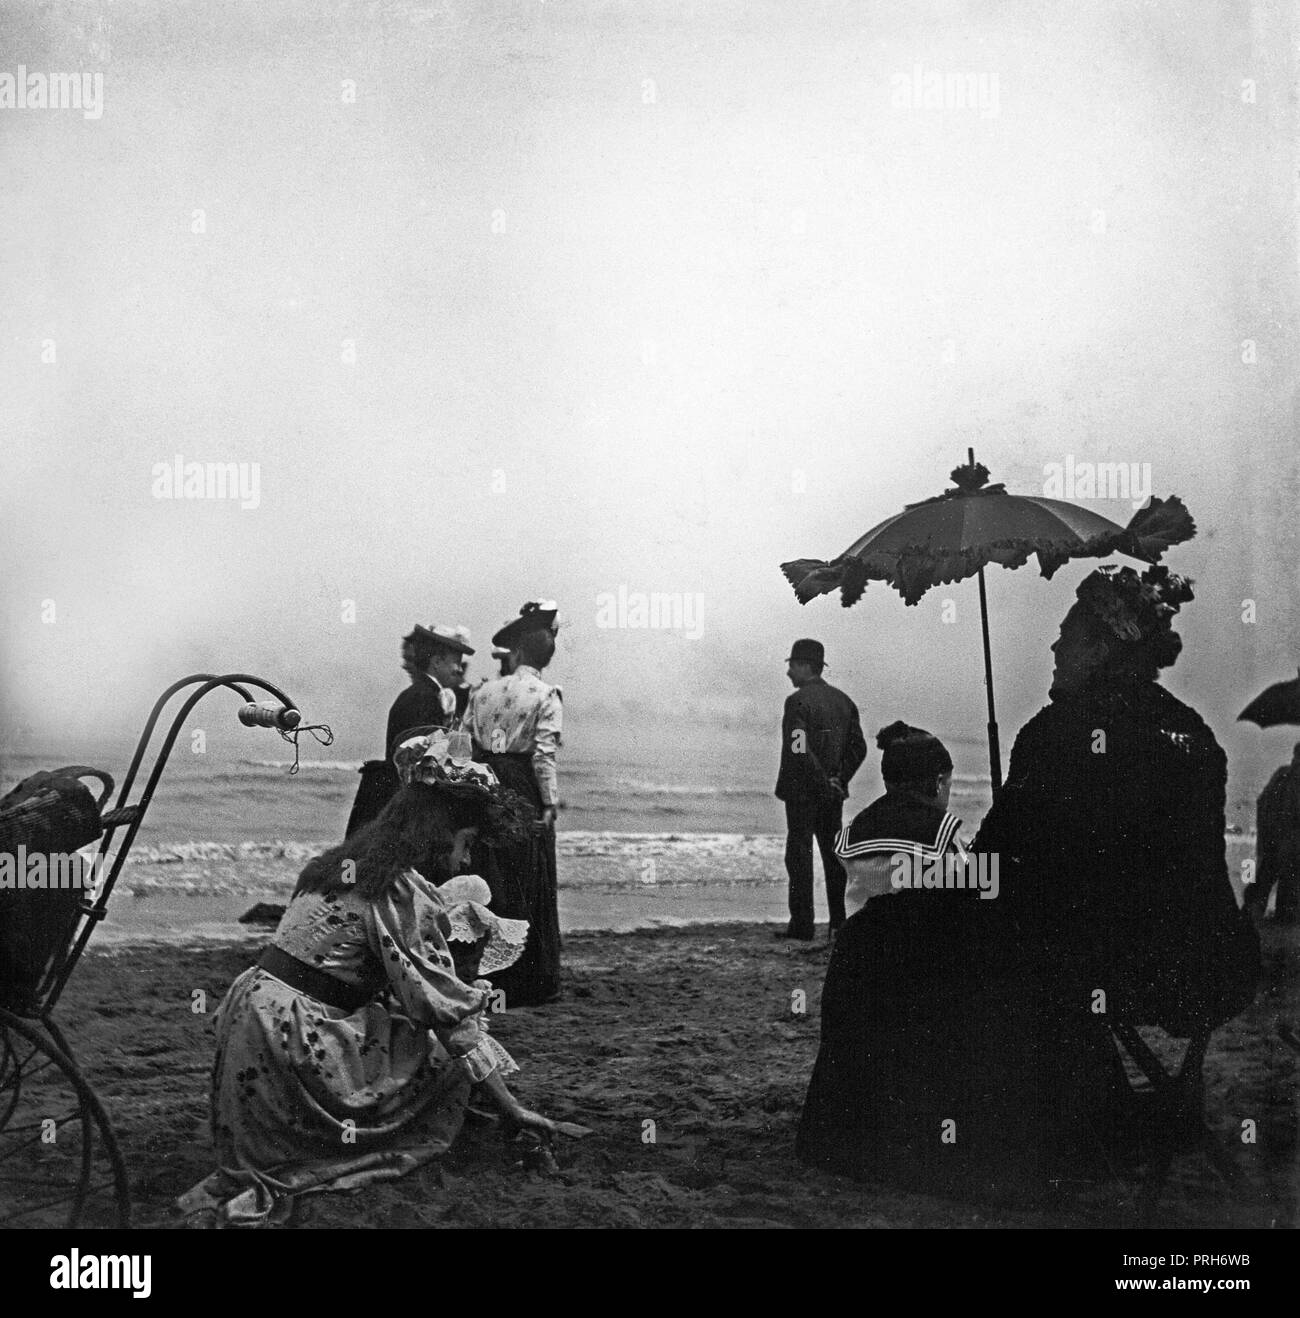 A late Victorian photograph showing groups of people at the a seaside resort in England. An elderly lady sheltering beneath a parasol, whilst a young girl attends to a small child. - Stock Image